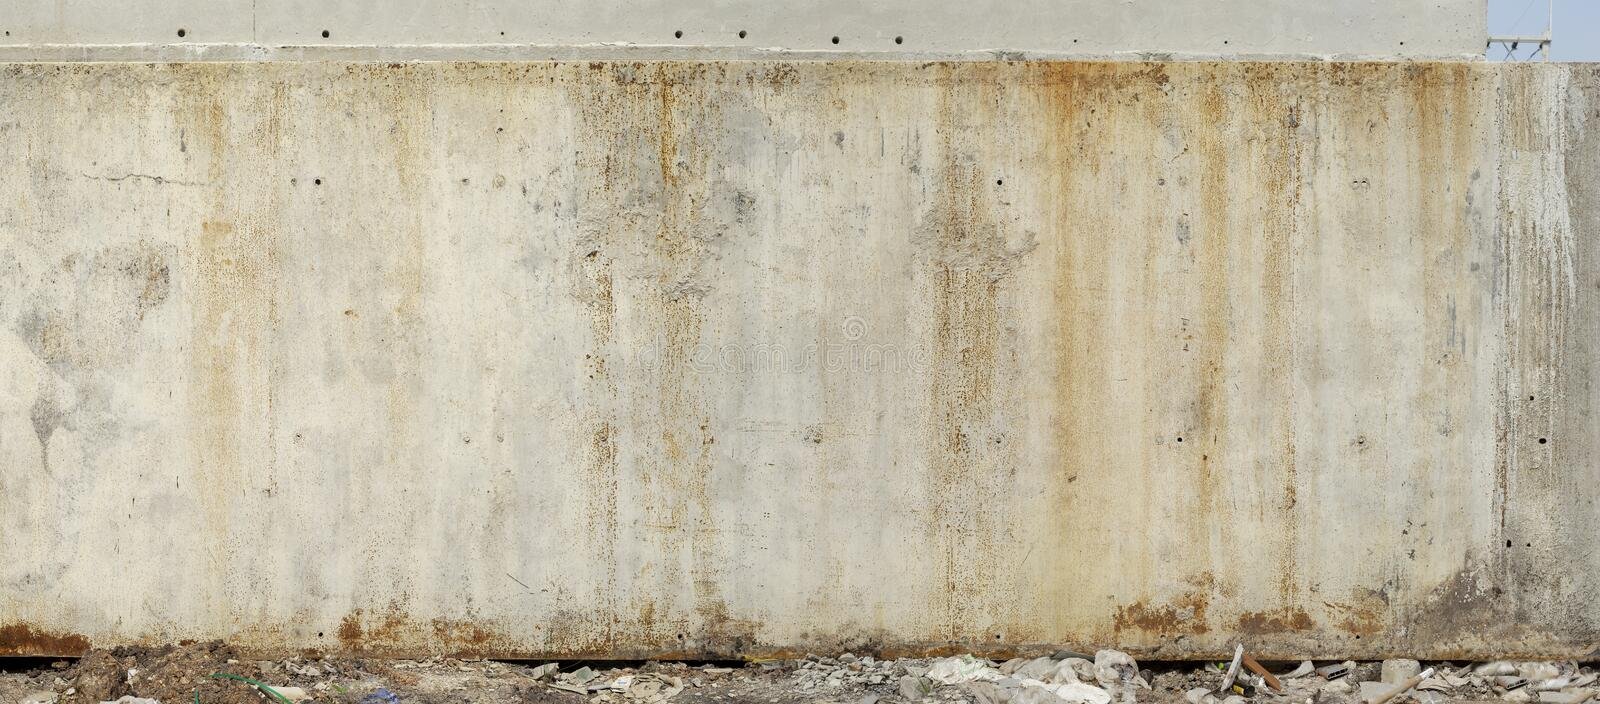 Stone texture for backgrounds image photo. Stock royalty free stock image